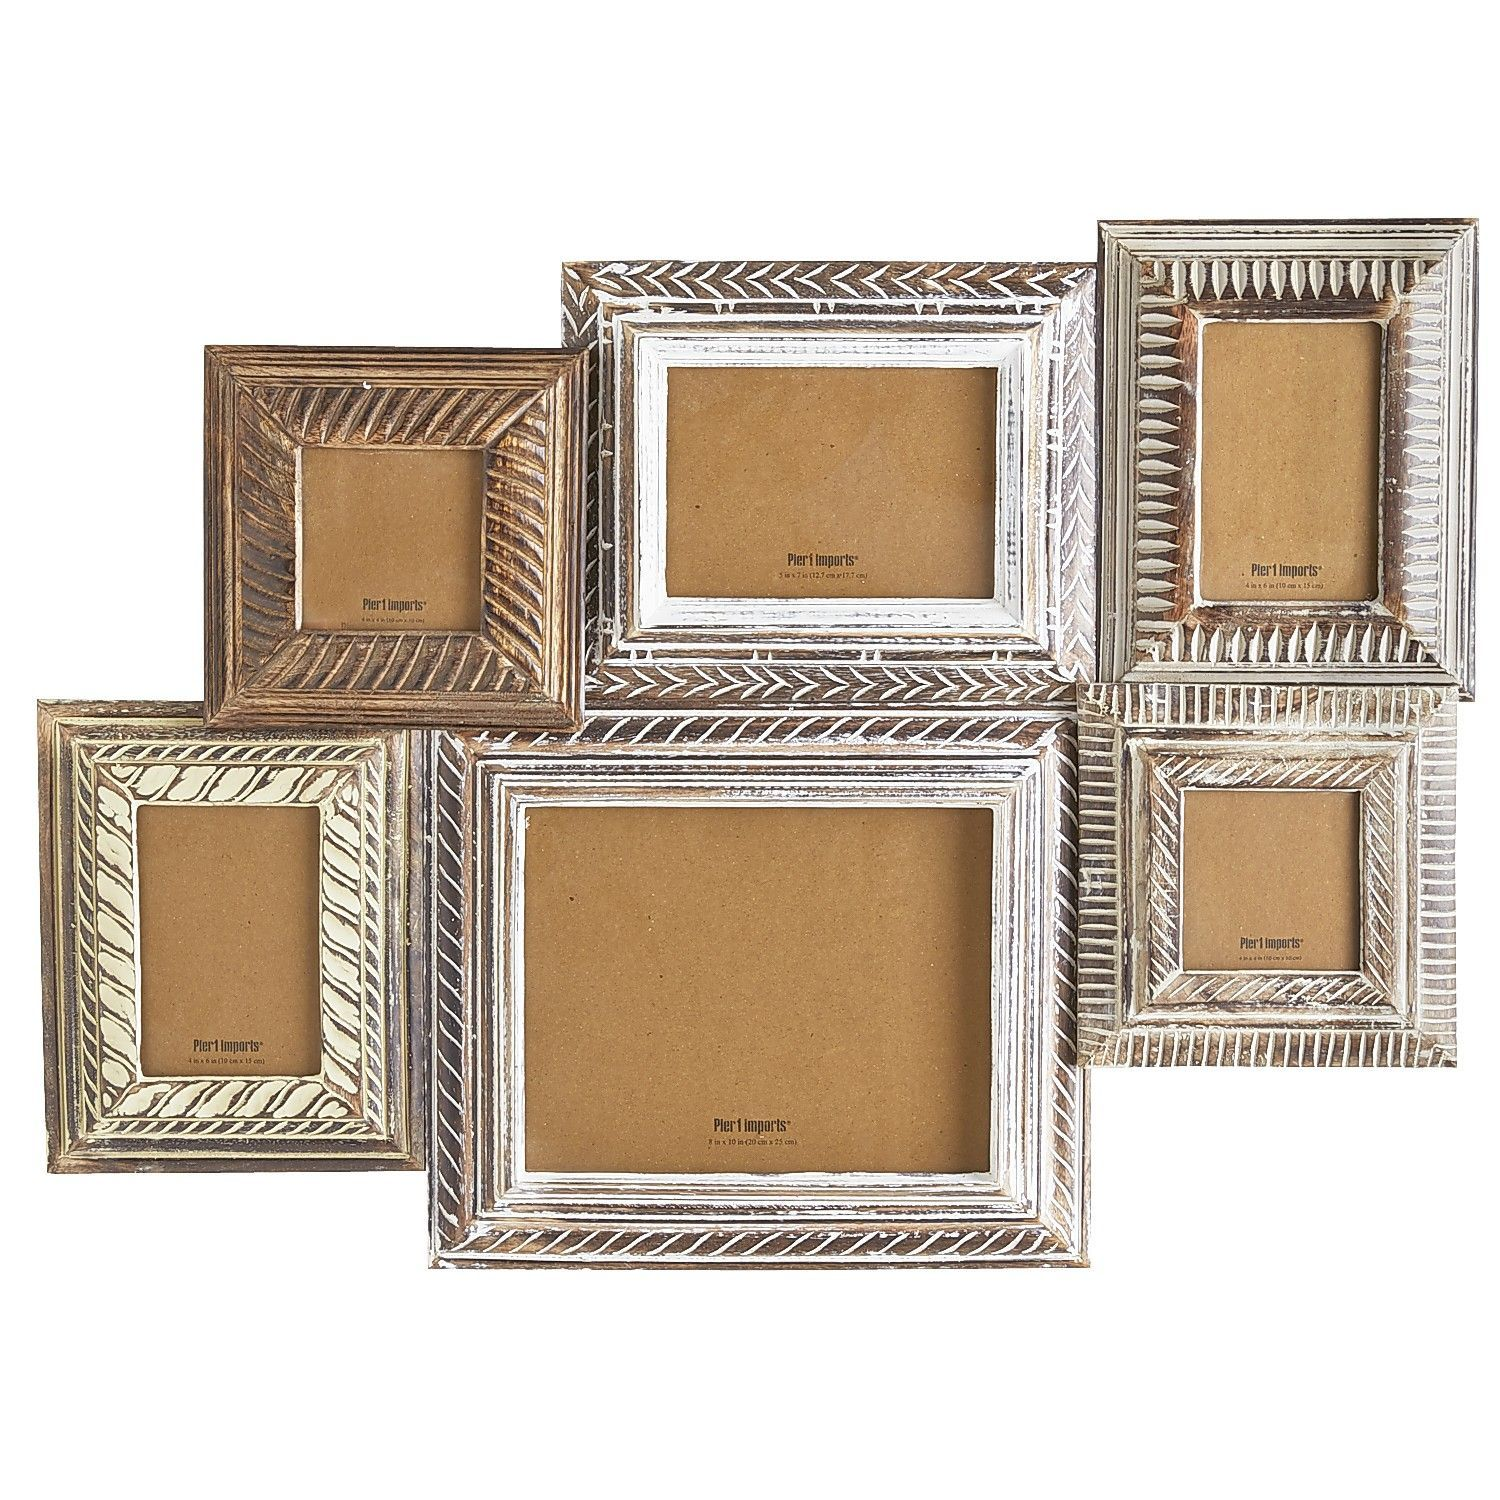 Presley Collage Frame - Pier 1 Imports